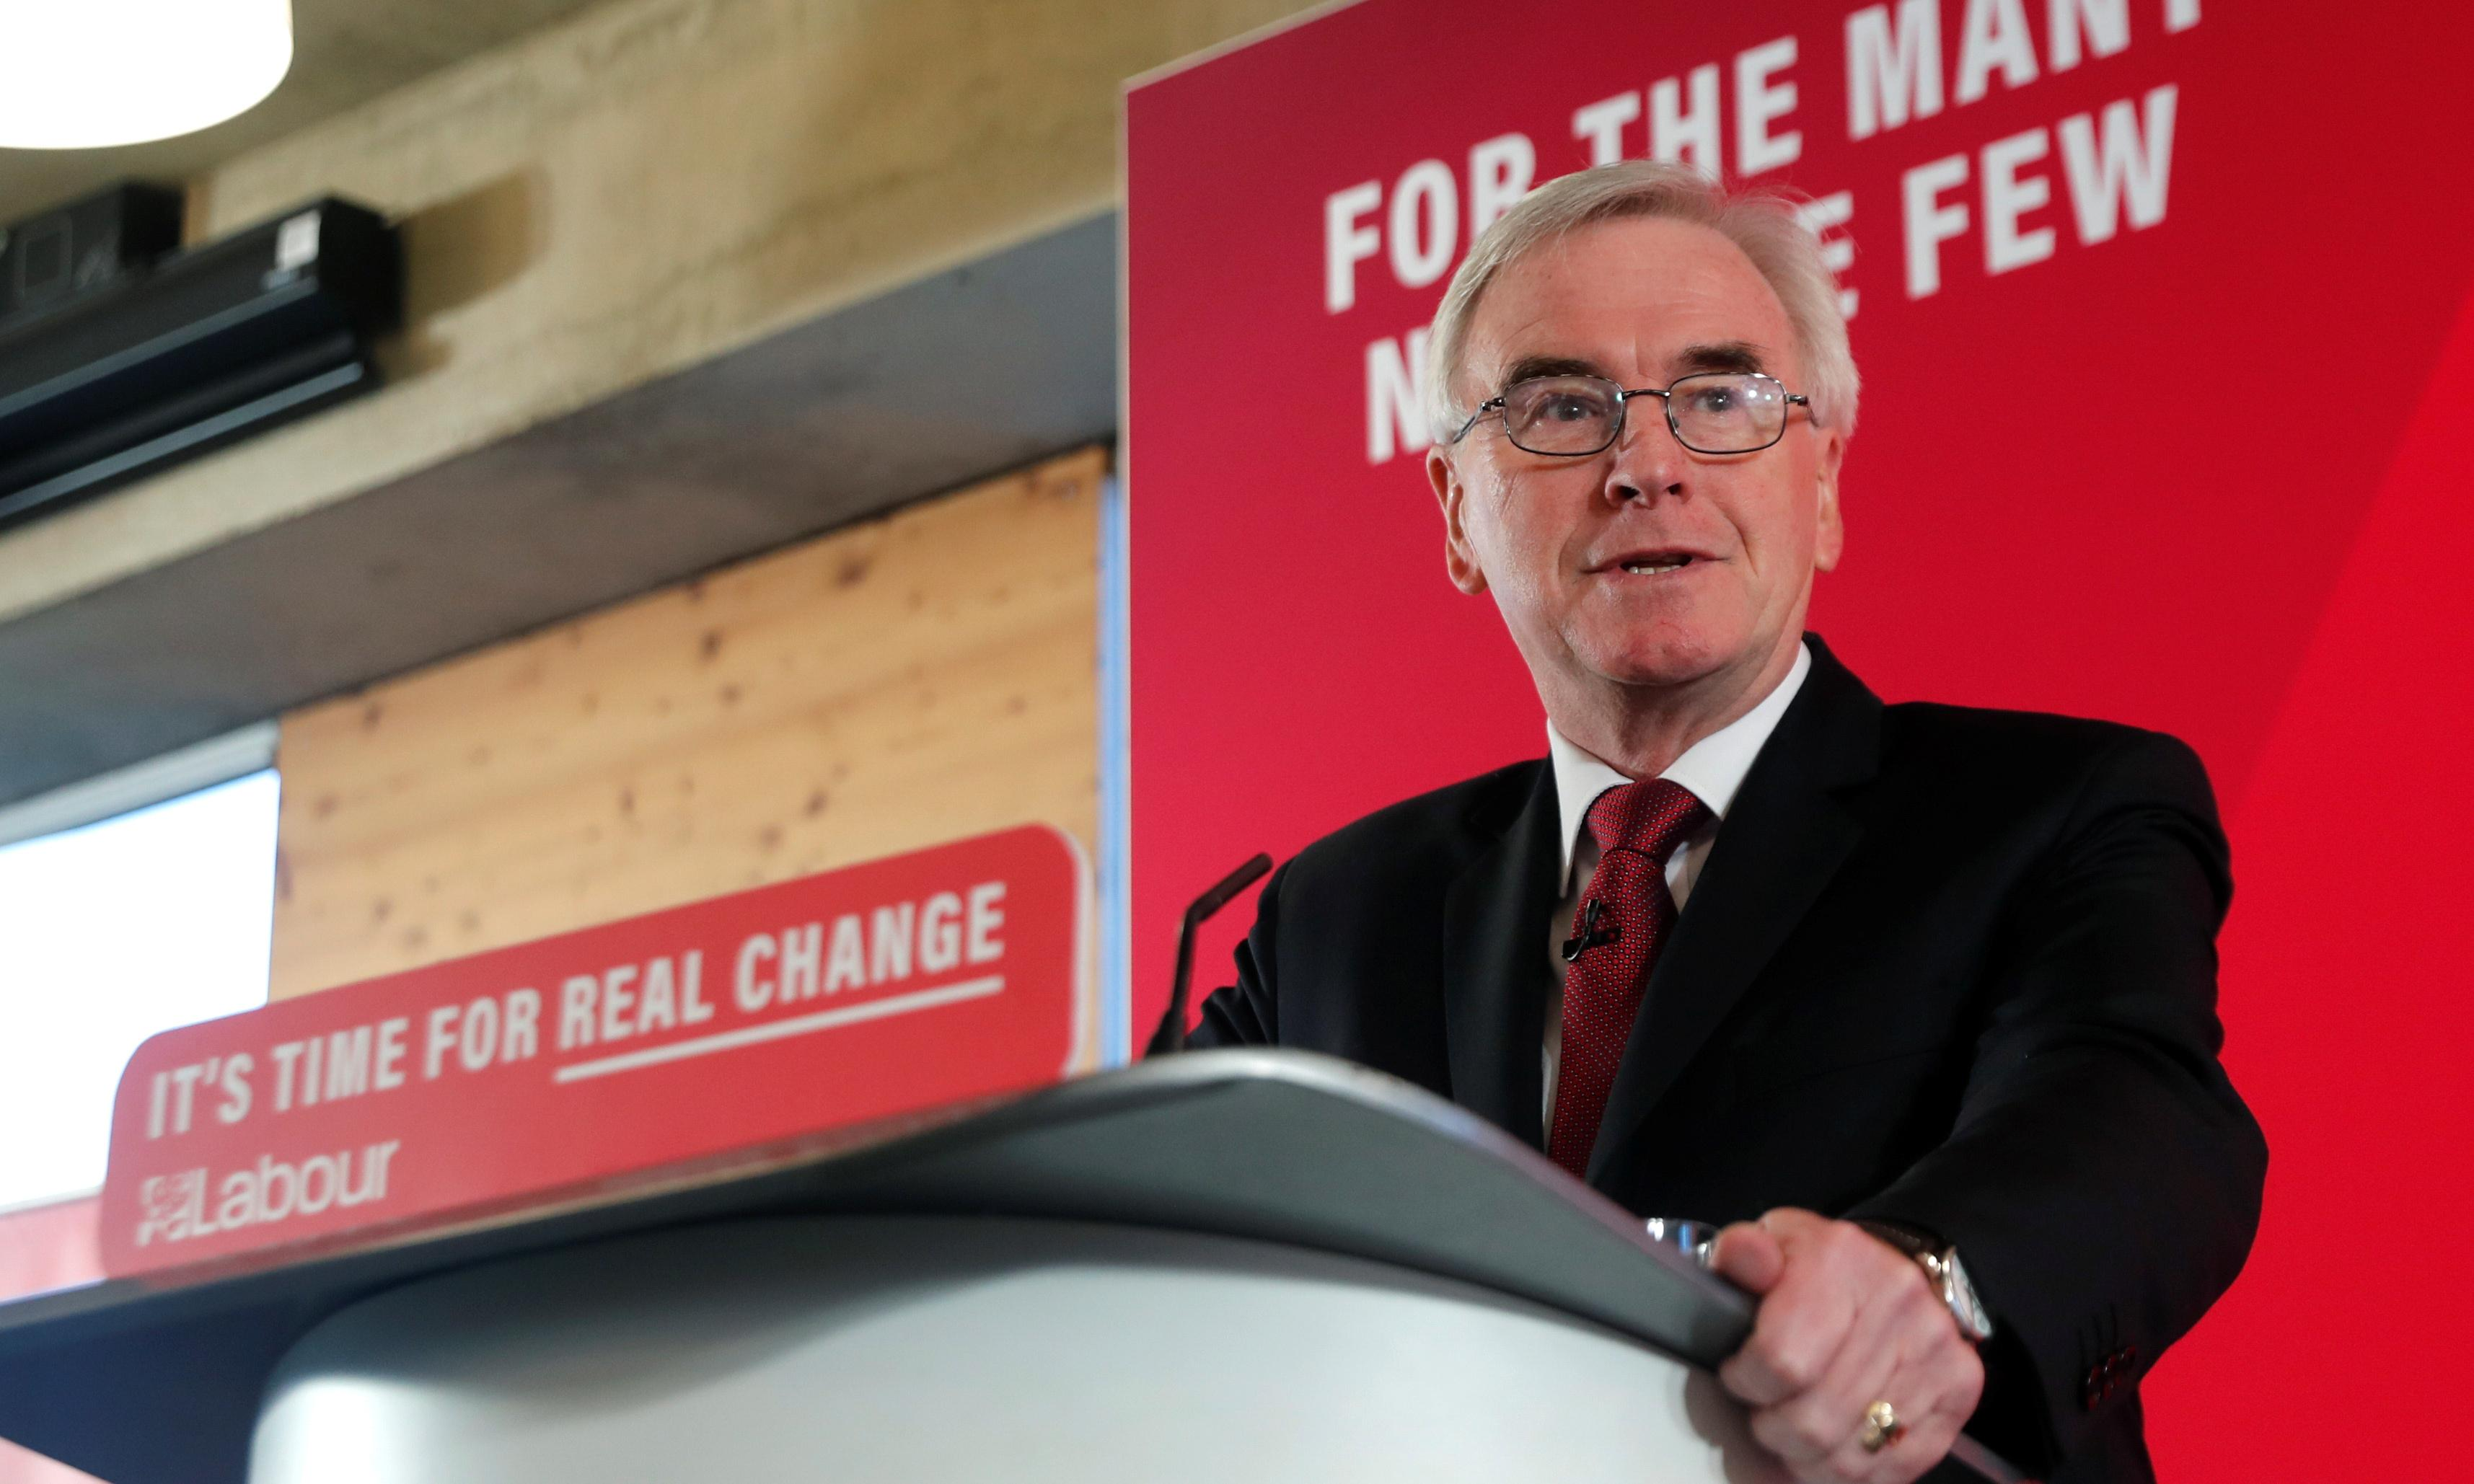 John McDonnell joins Arlene Foster in attack on PM 'you can't trust'